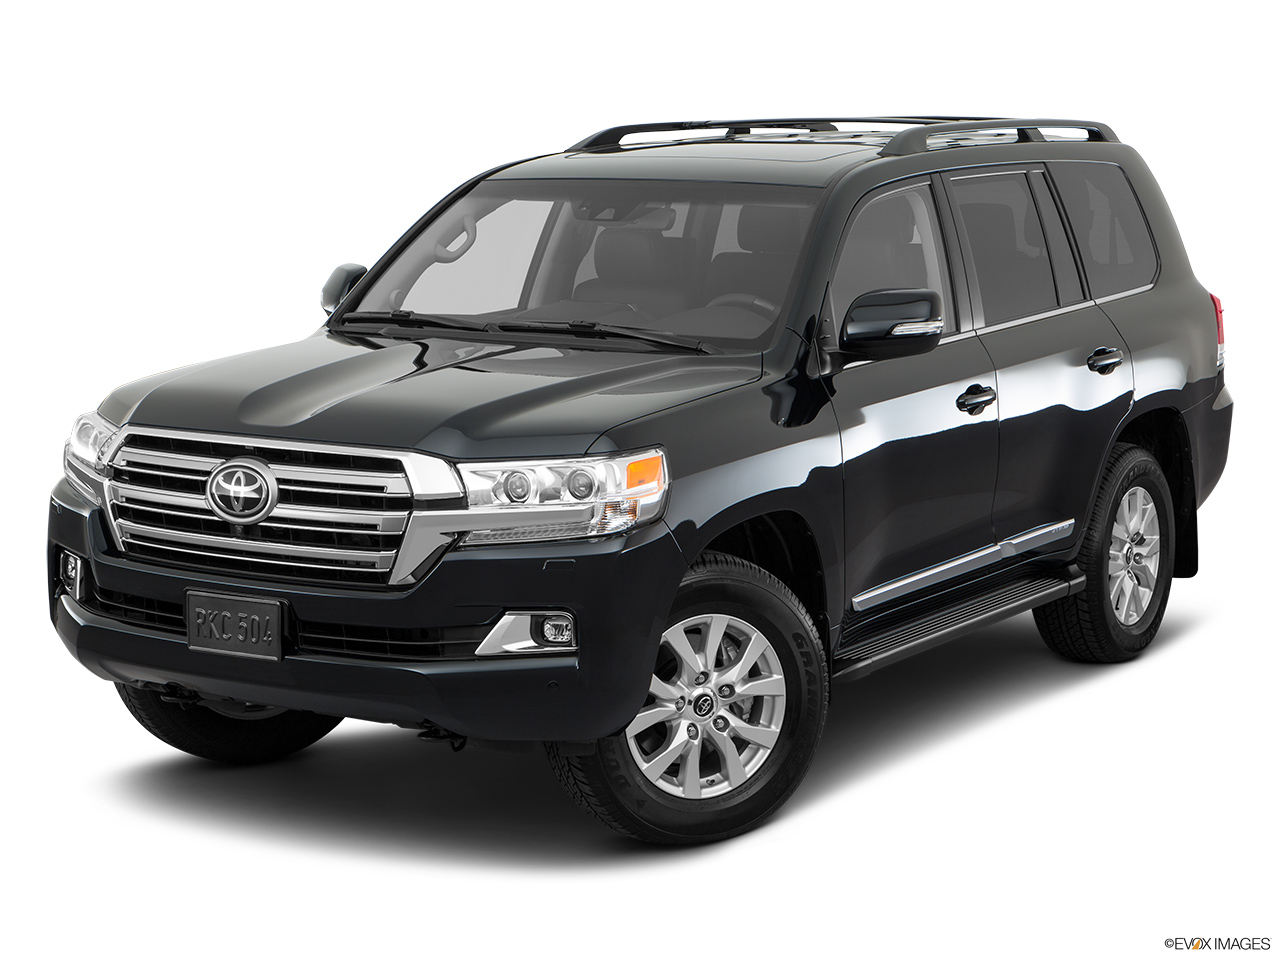 2018 Toyota Land Cruiser Prices In Uae Gulf Specs Amp Reviews For Dubai Abu Dhabi And Sharjah